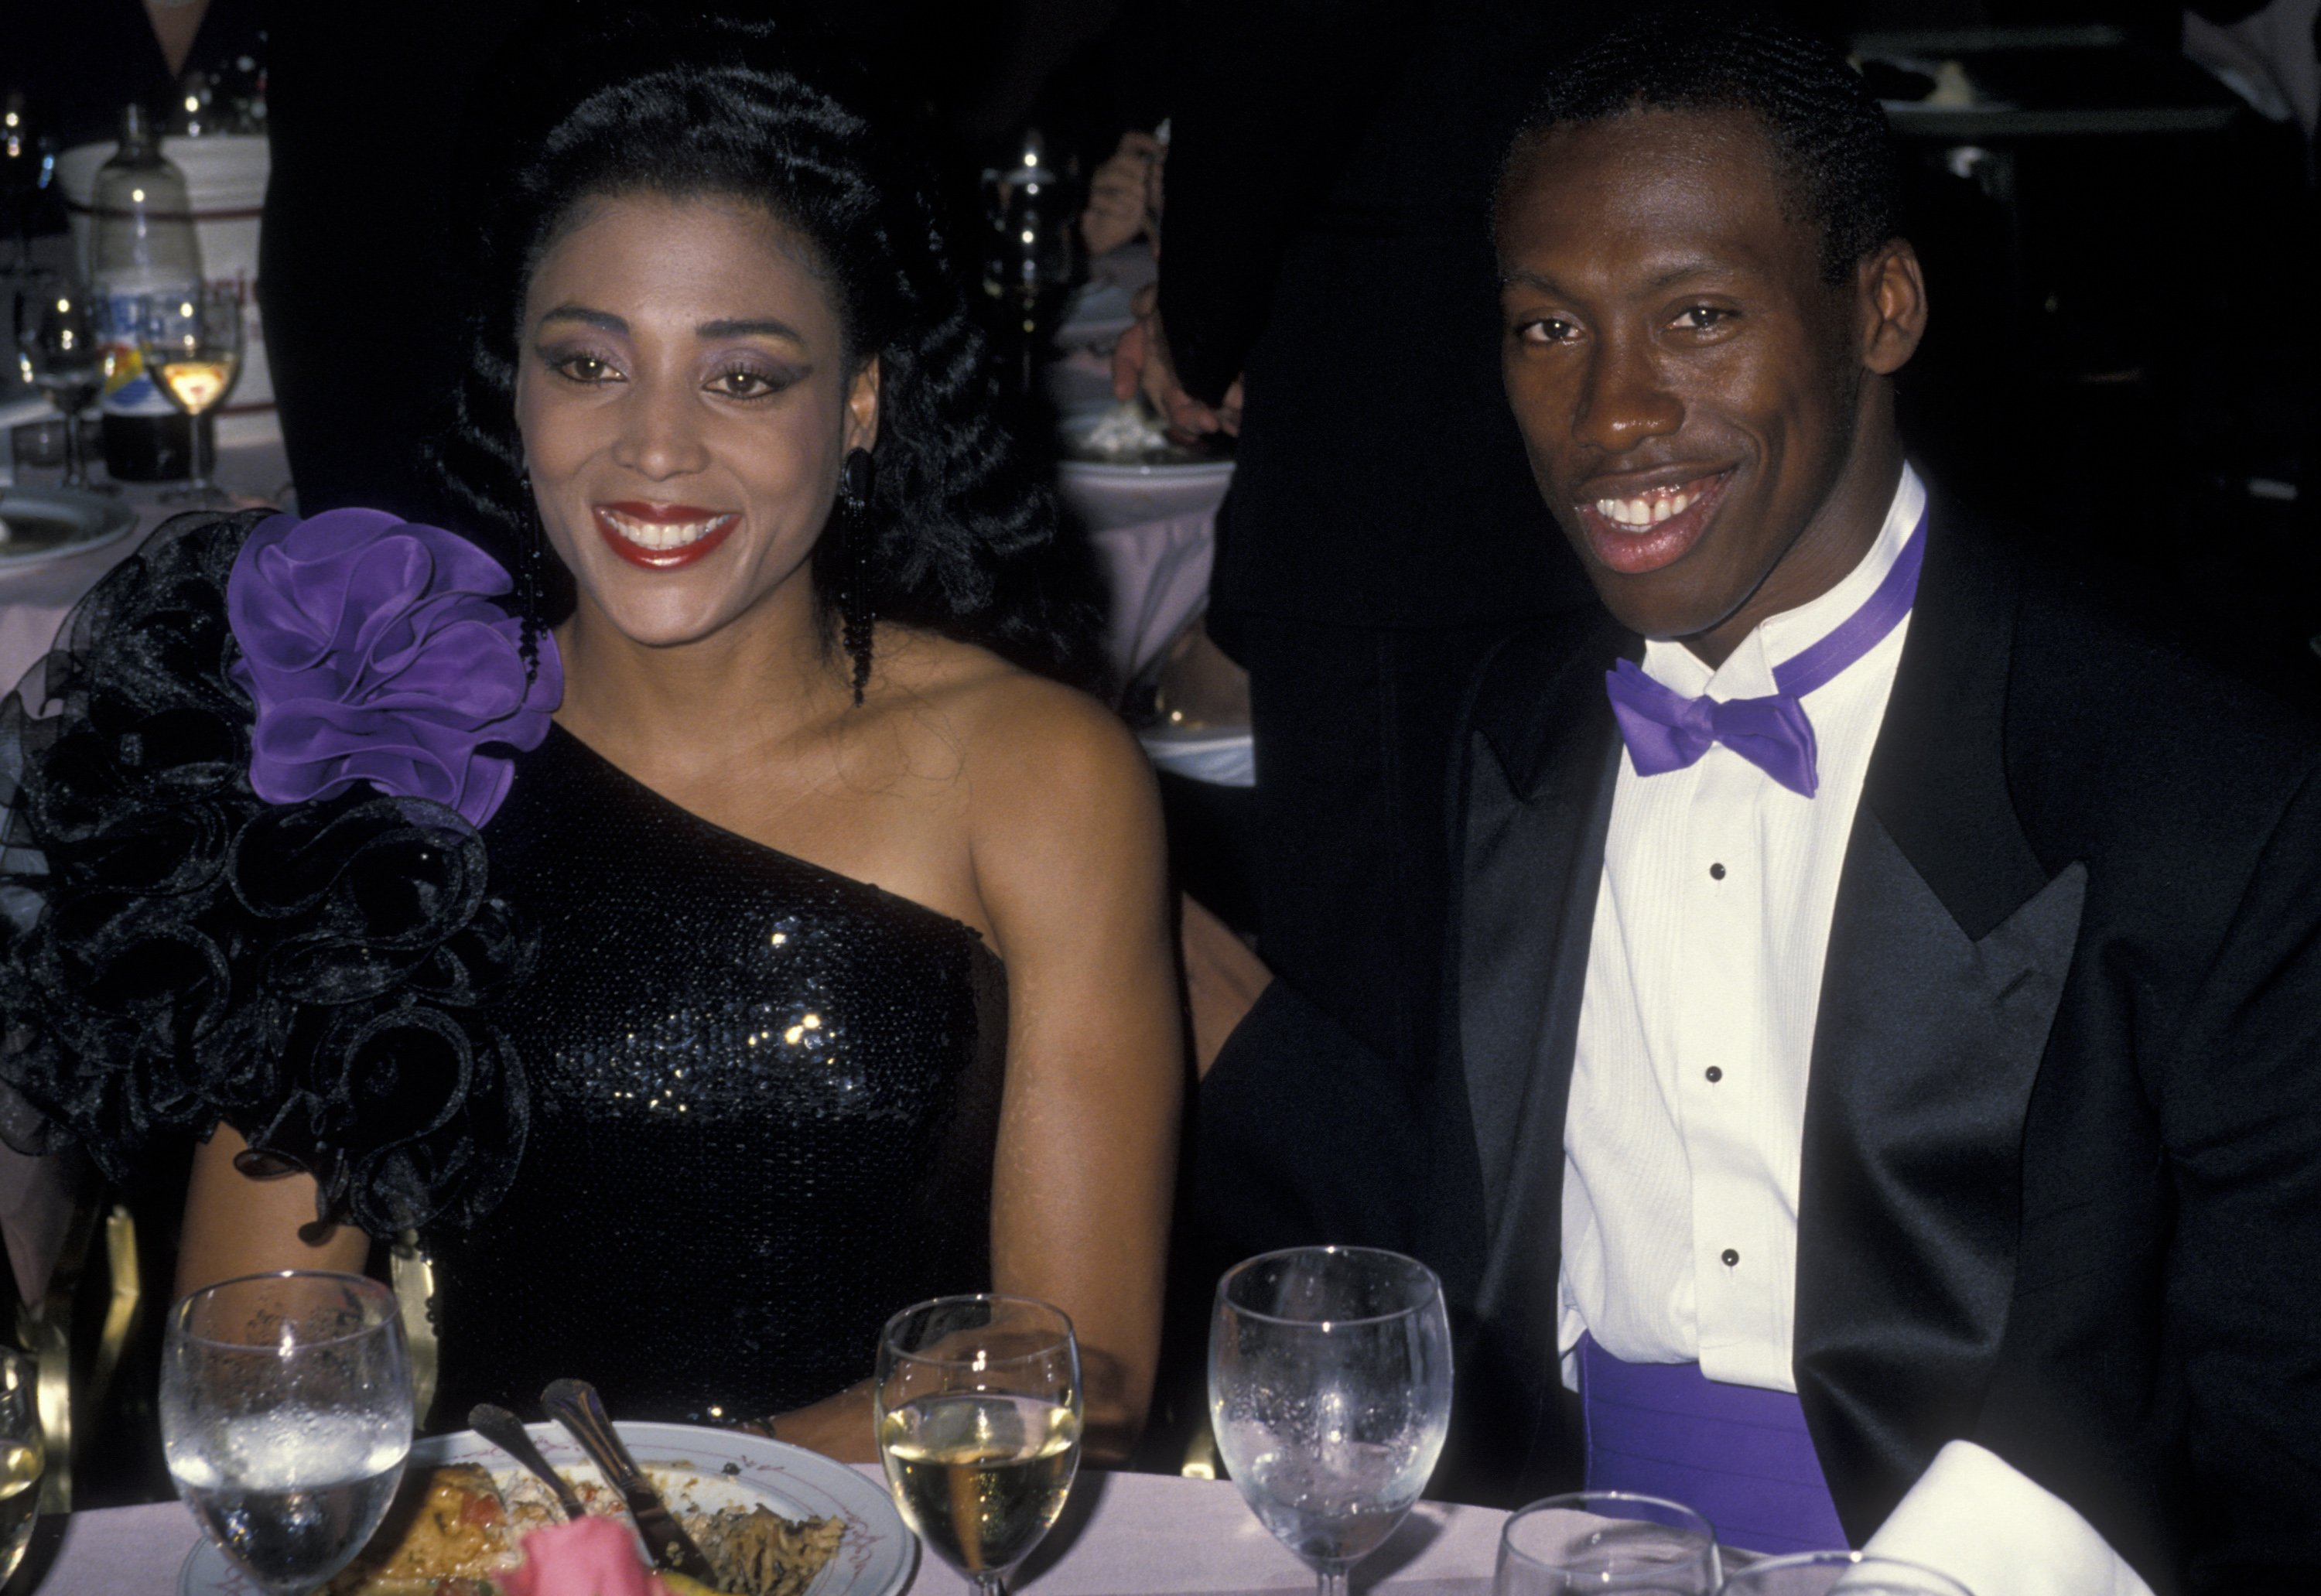 Florence Griffith-Joyner and Al Joyner at the 9th Annual Woman's Sports Foundation Awards on October 17, 1988 in New York City | Photo: Getty Images